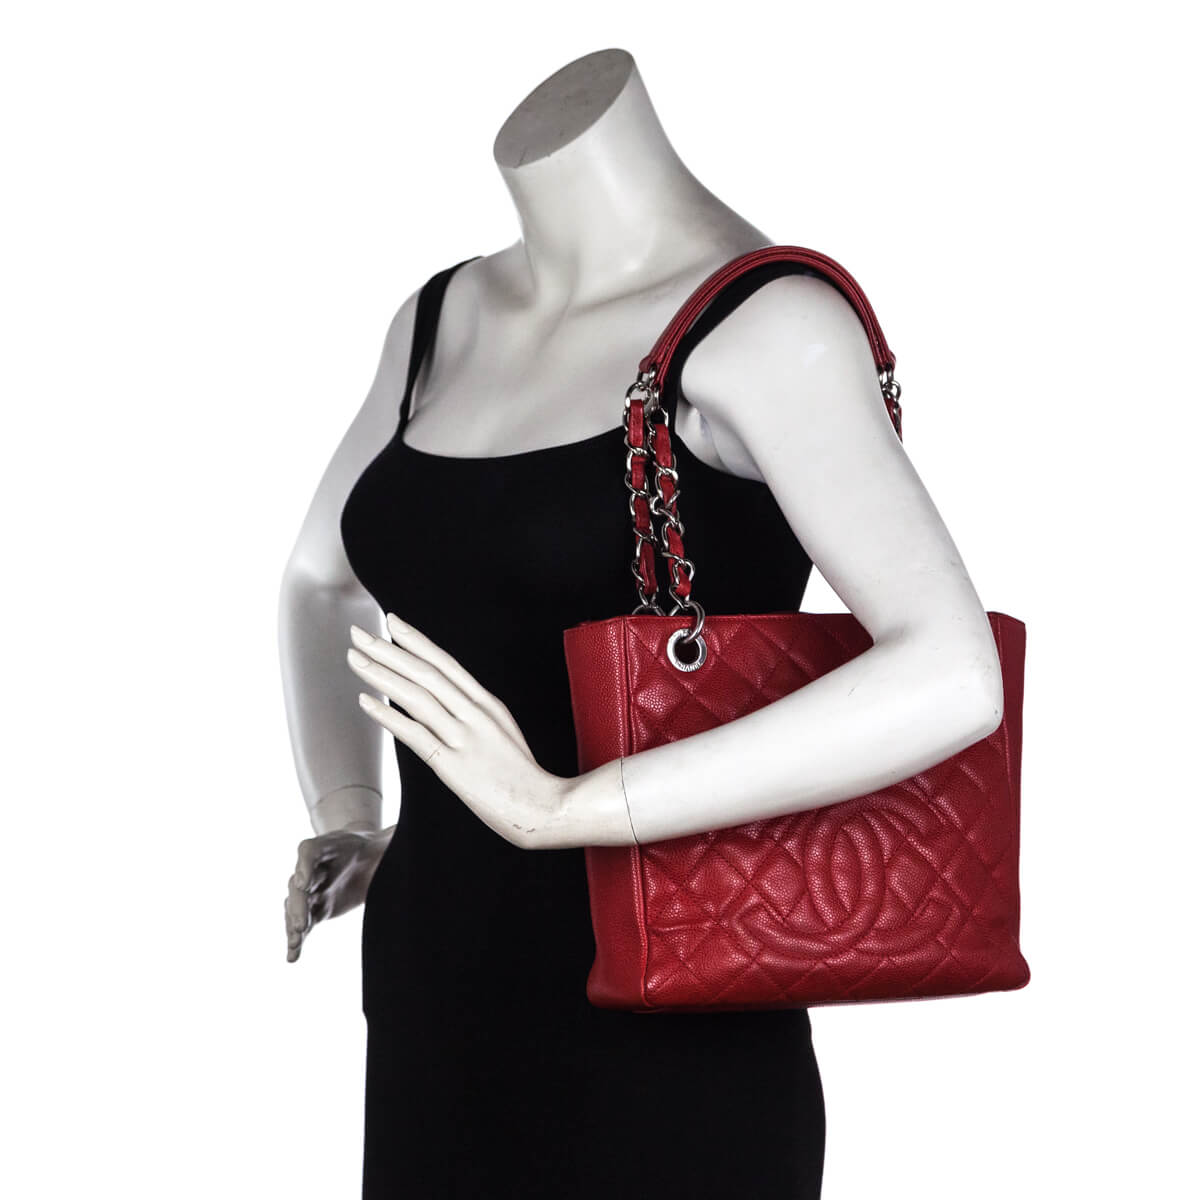 d4d58f57eace6 ... Chanel Red Caviar Petit Shopping Tote SHW - LOVE that BAG - Preowned  Authentic Designer Handbags